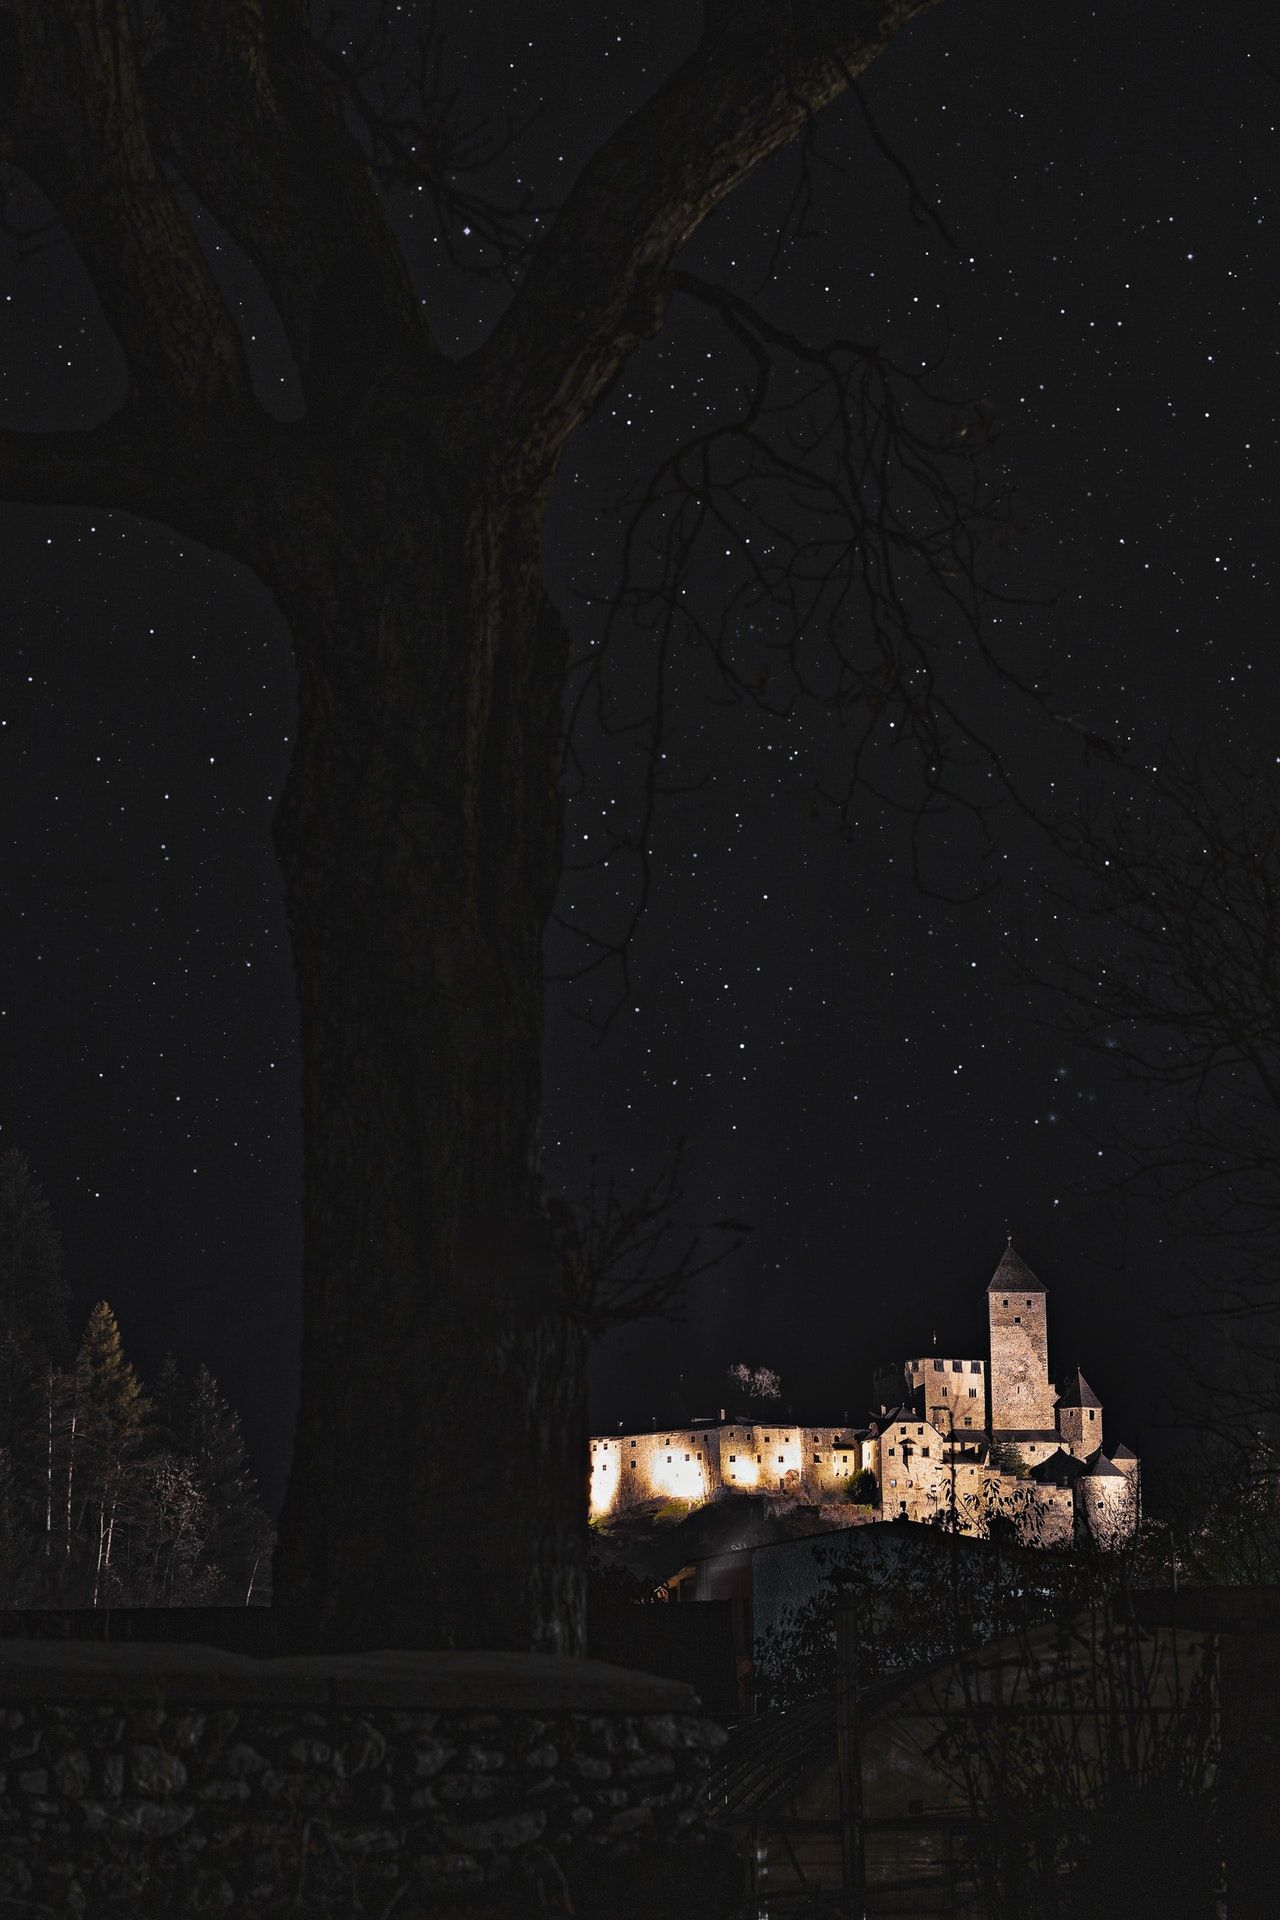 Beautiful wallpaper with castle and trees in the night 1280x1920